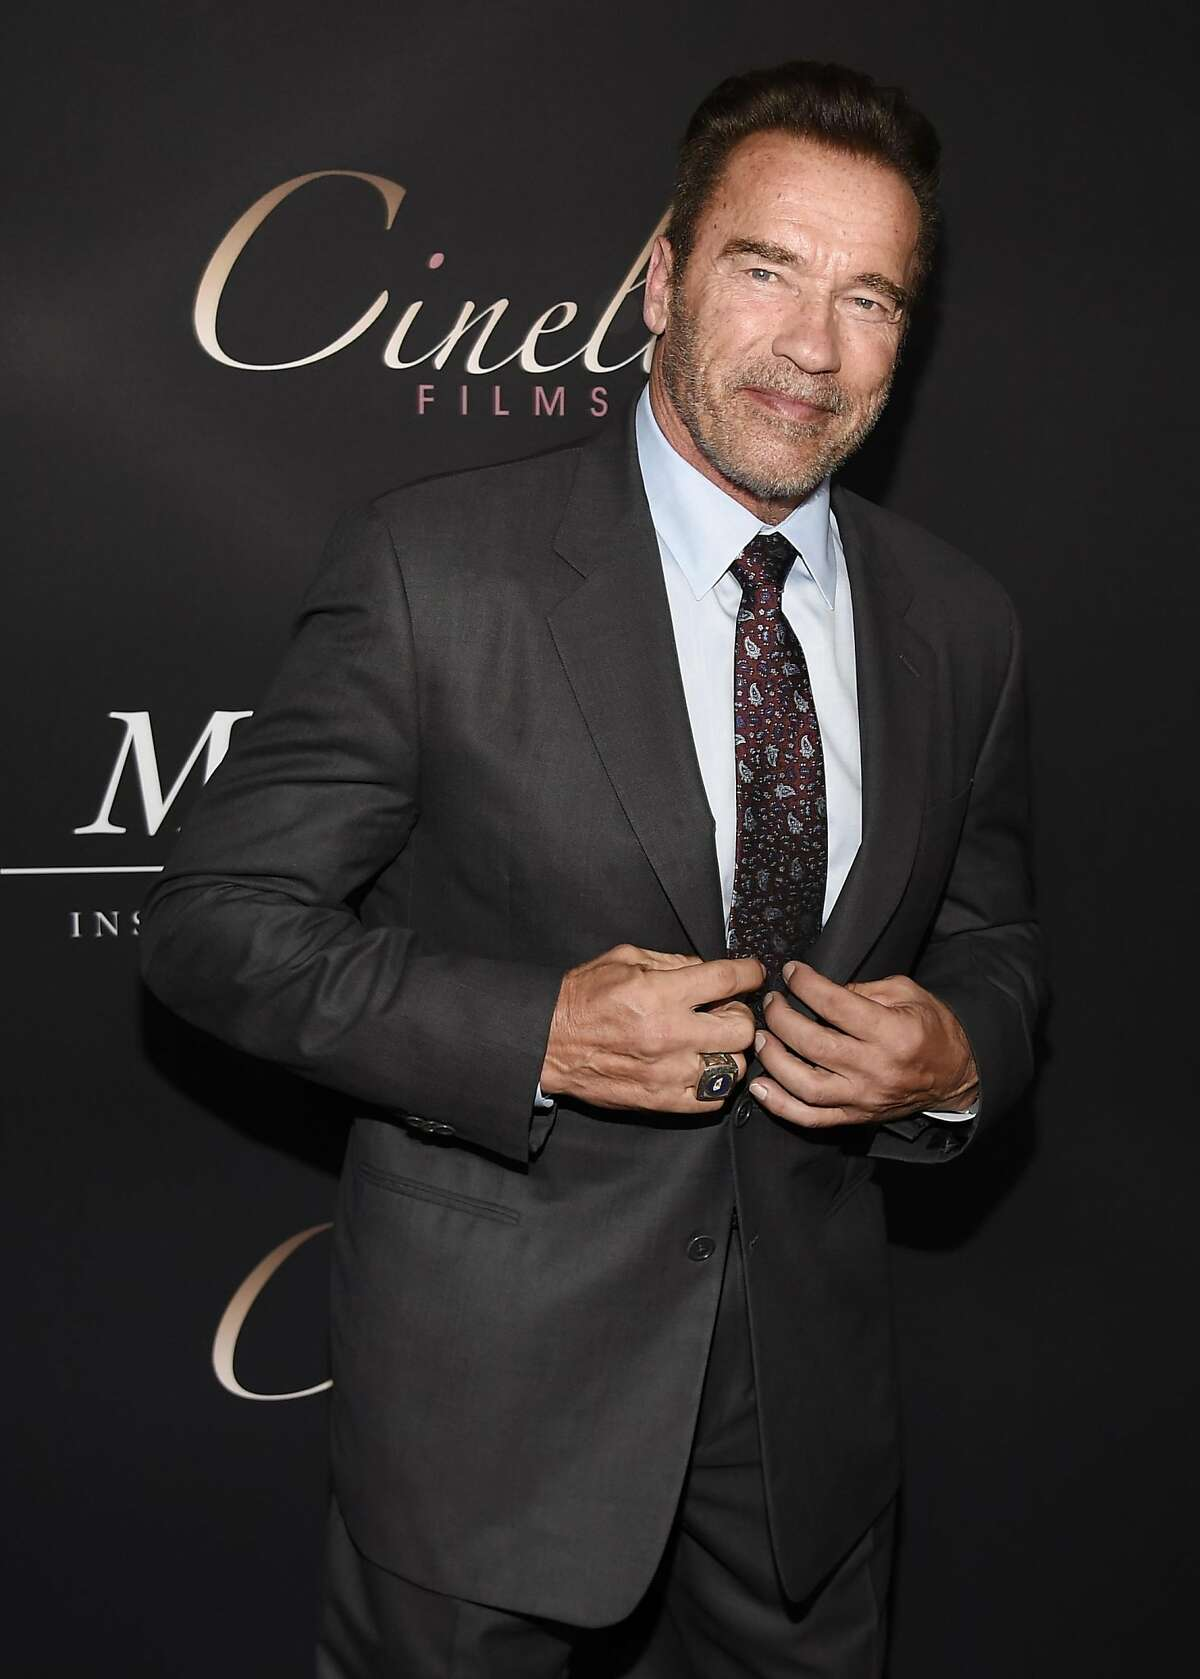 """Arnold Schwarzenegger poses at the premiere of the film """"Mr. Church"""" at the ArcLight Hollywood on Tuesday, Sept. 6, 2016, in Los Angeles. (Photo by Chris Pizzello/Invision/AP)"""